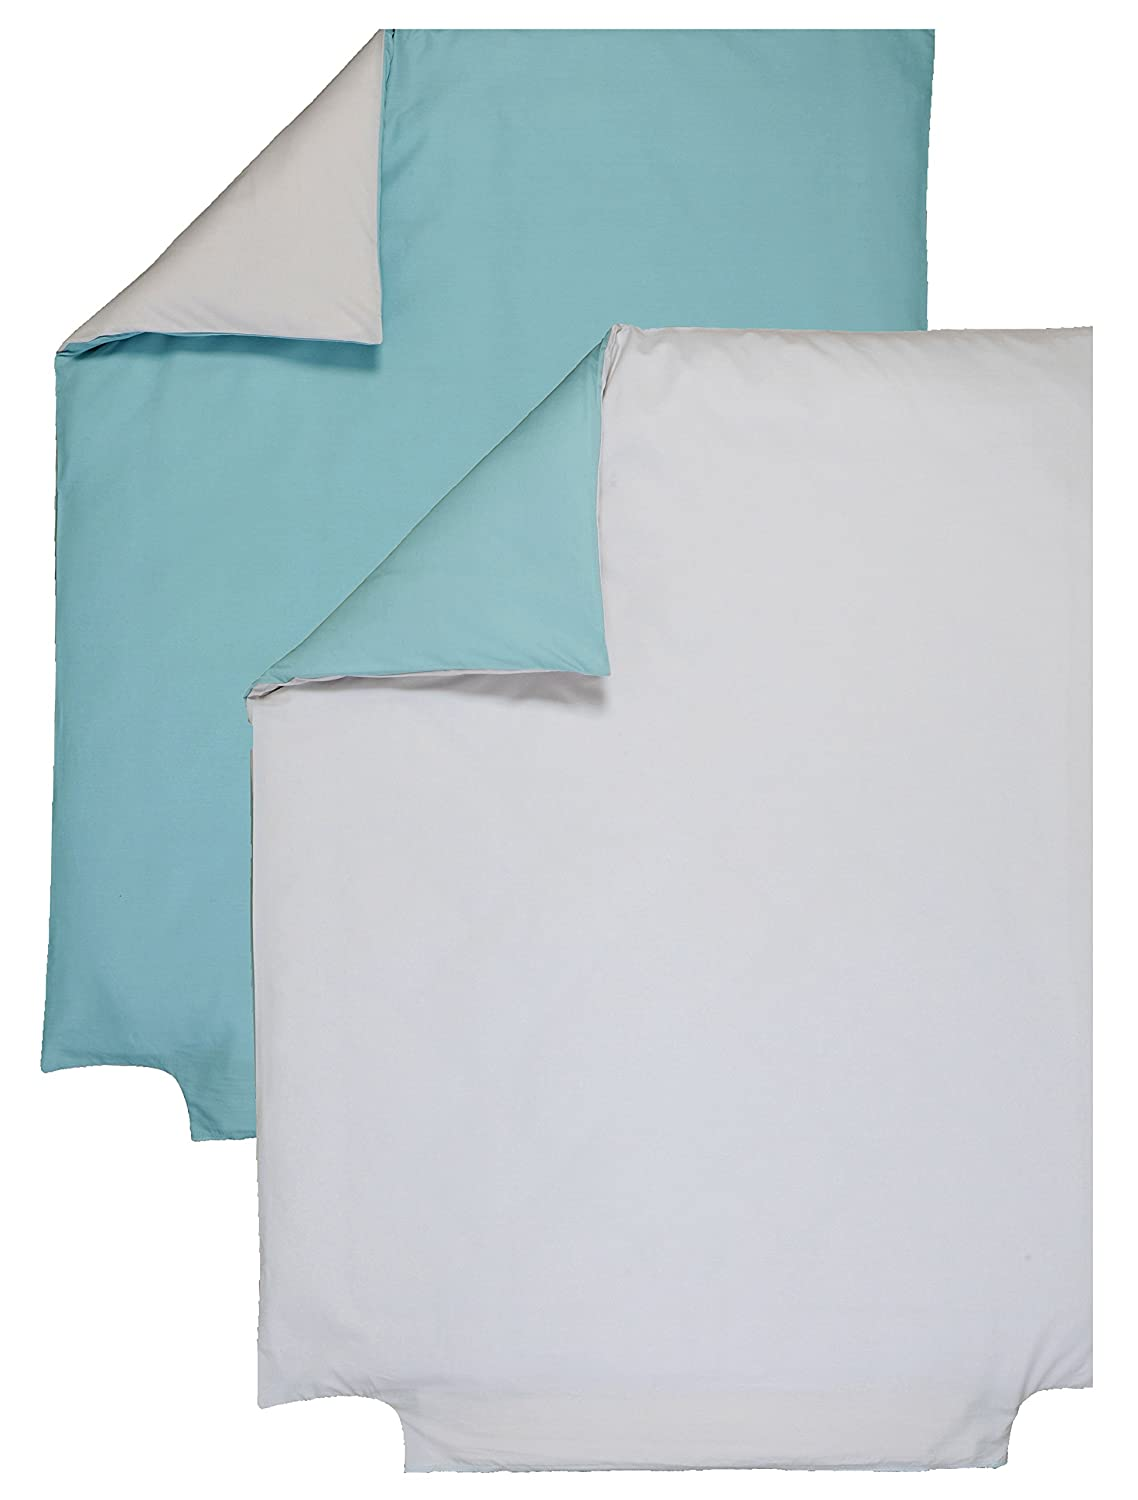 P 'tit Basile - Two-Tone Reversible Duvet Cover for cot bed / toddler bed - Size 120x150 cm - grey/Turquoise - High Quality soft Organic Cotton - 57 Thread Count for Extra Comfort. P'tit Basile